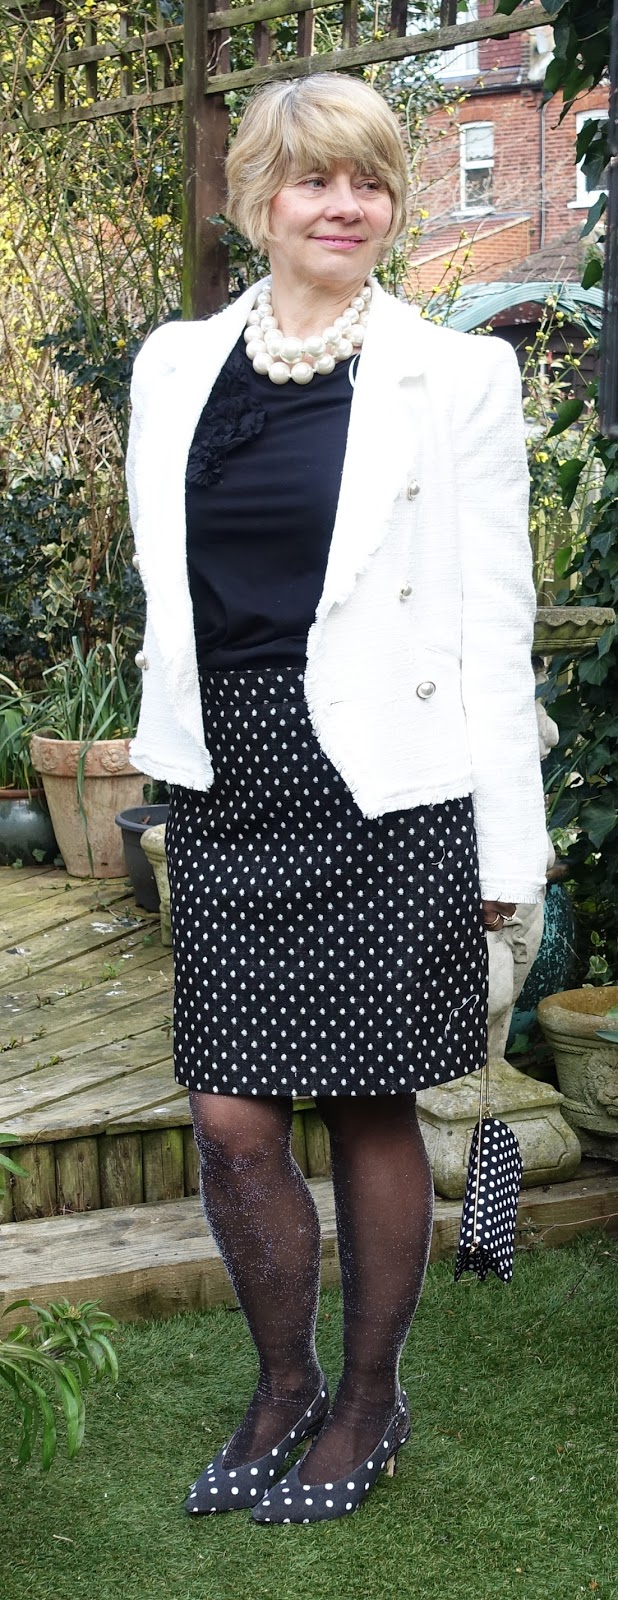 Image showing a woman wearing a white boucle jacket for spring with polka dot skirt and sling back shoes.